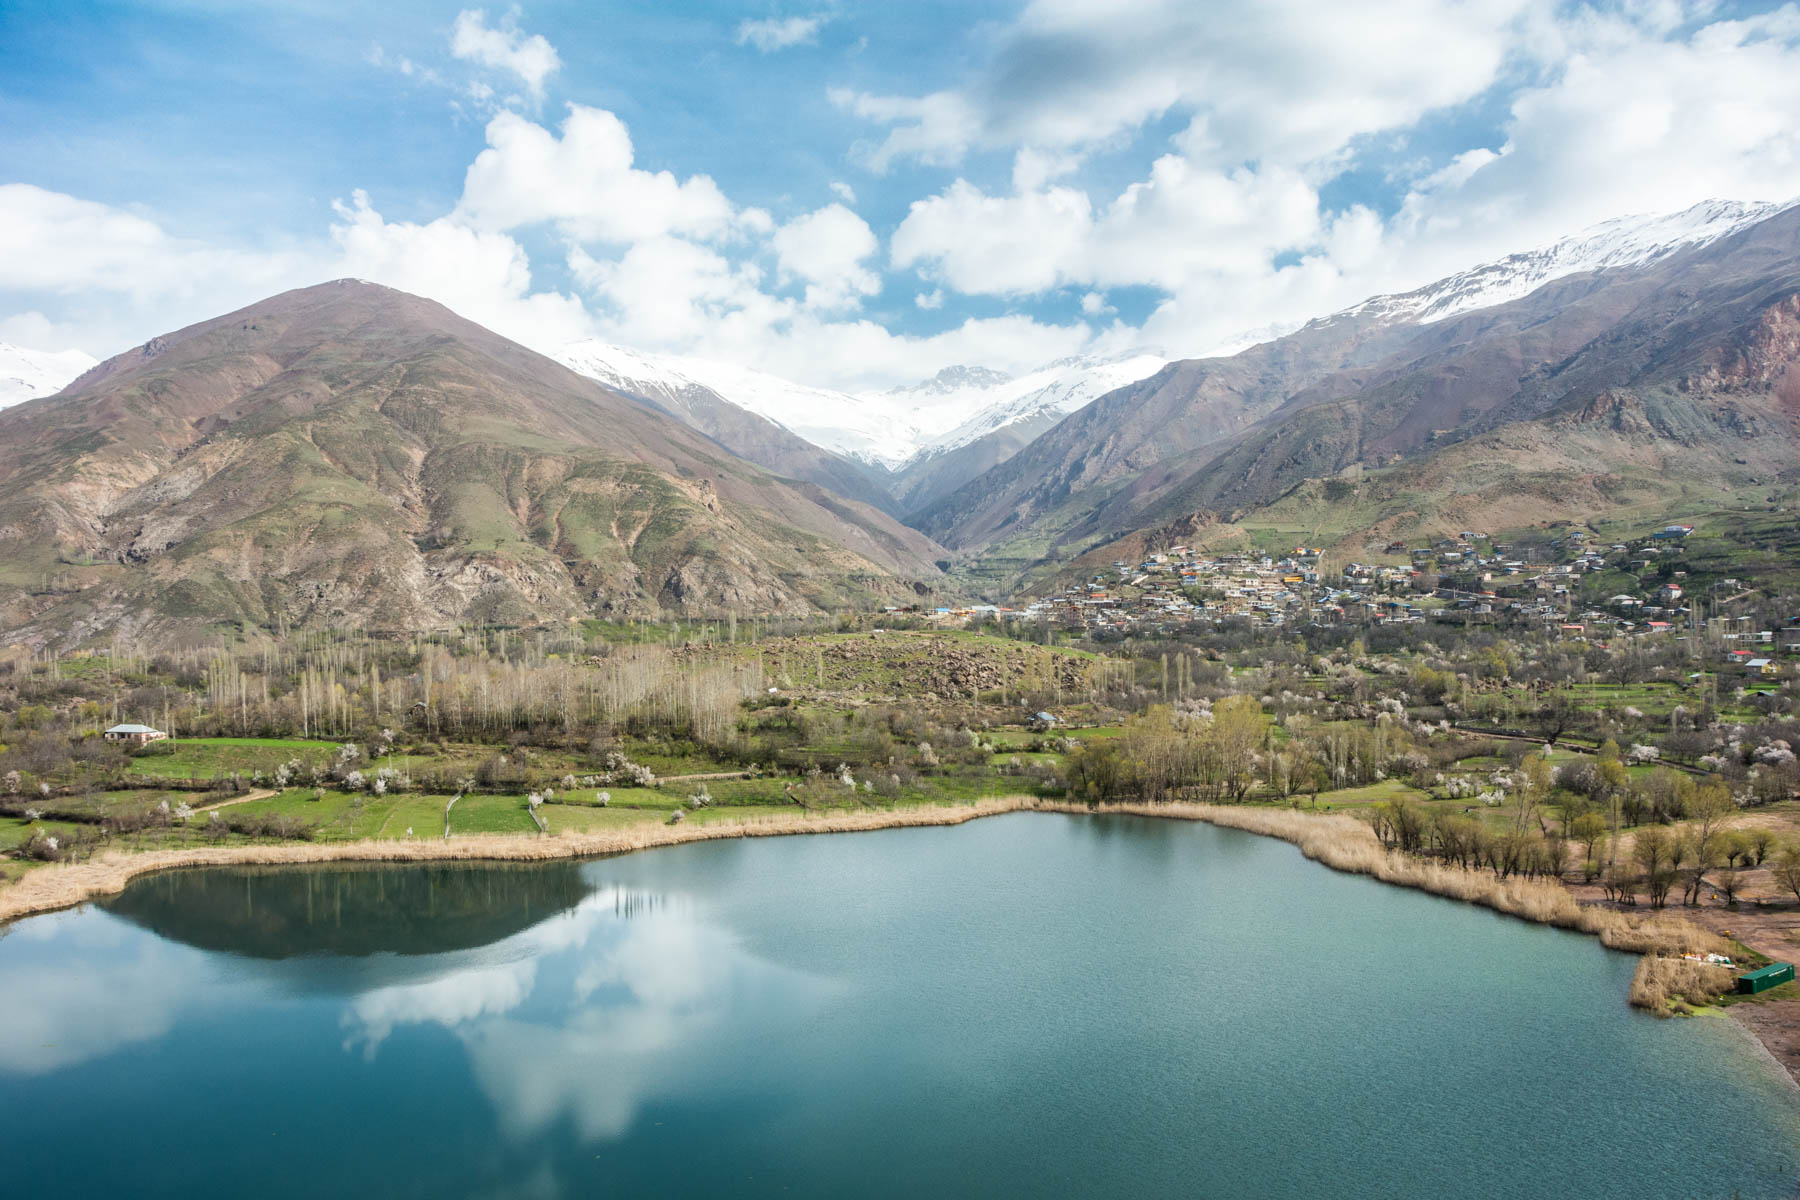 A view of Evan Lake in the Alamut Valley in Iran